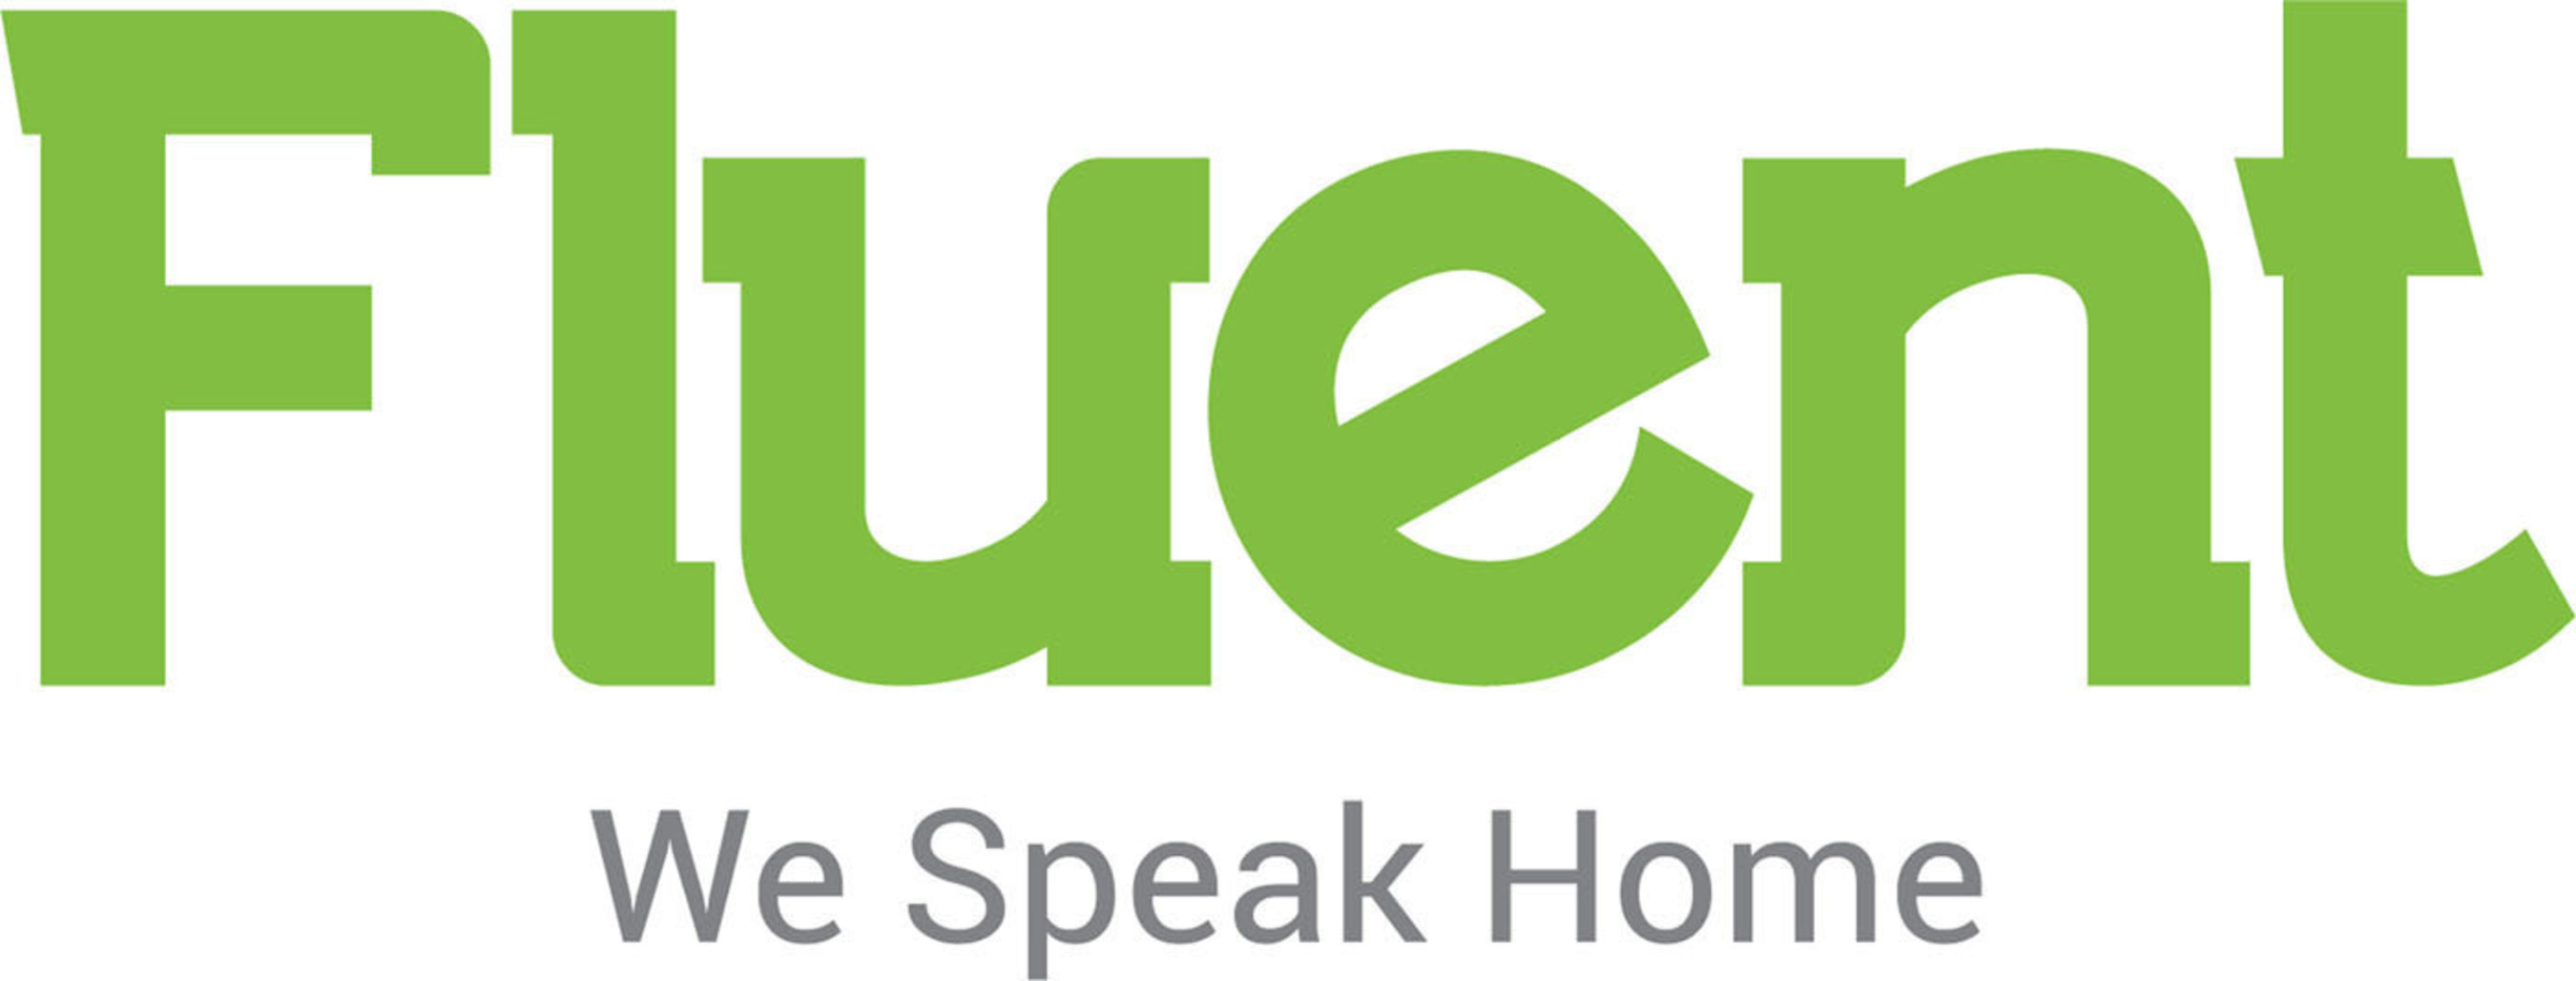 Fluent Home is a leading provider of home security and automation services. In only its fourth year of operation, Fluent has raised more than $30 million from a private investment firm. This investment will help launch a new stage of product development and customer retention for the company. Fluent home automation and security alarm engineers are creating new technologies and services that will enhance consumers' homes and way of life. (PRNewsFoto/Fluent Home) (PRNewsFoto/FLUENT HOME)